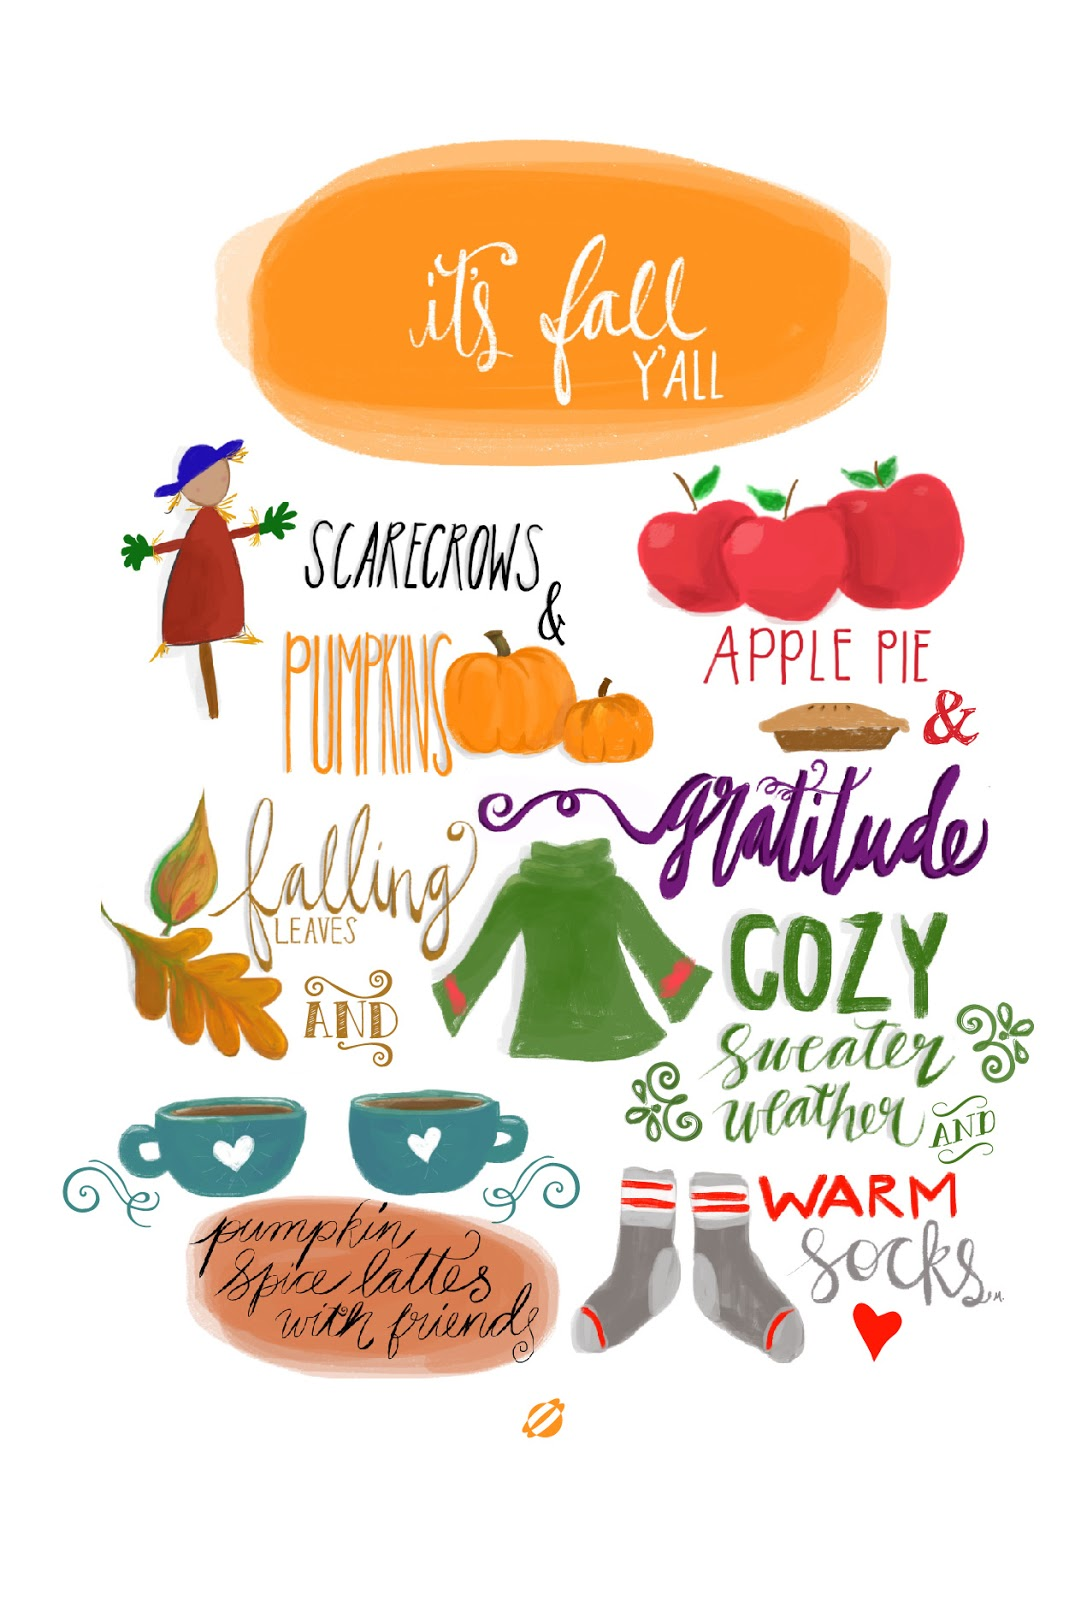 LostBumblebee ©2014- MDBN-  It's Fall Y'all Free Printable - Handlettered- Personal Use Only.